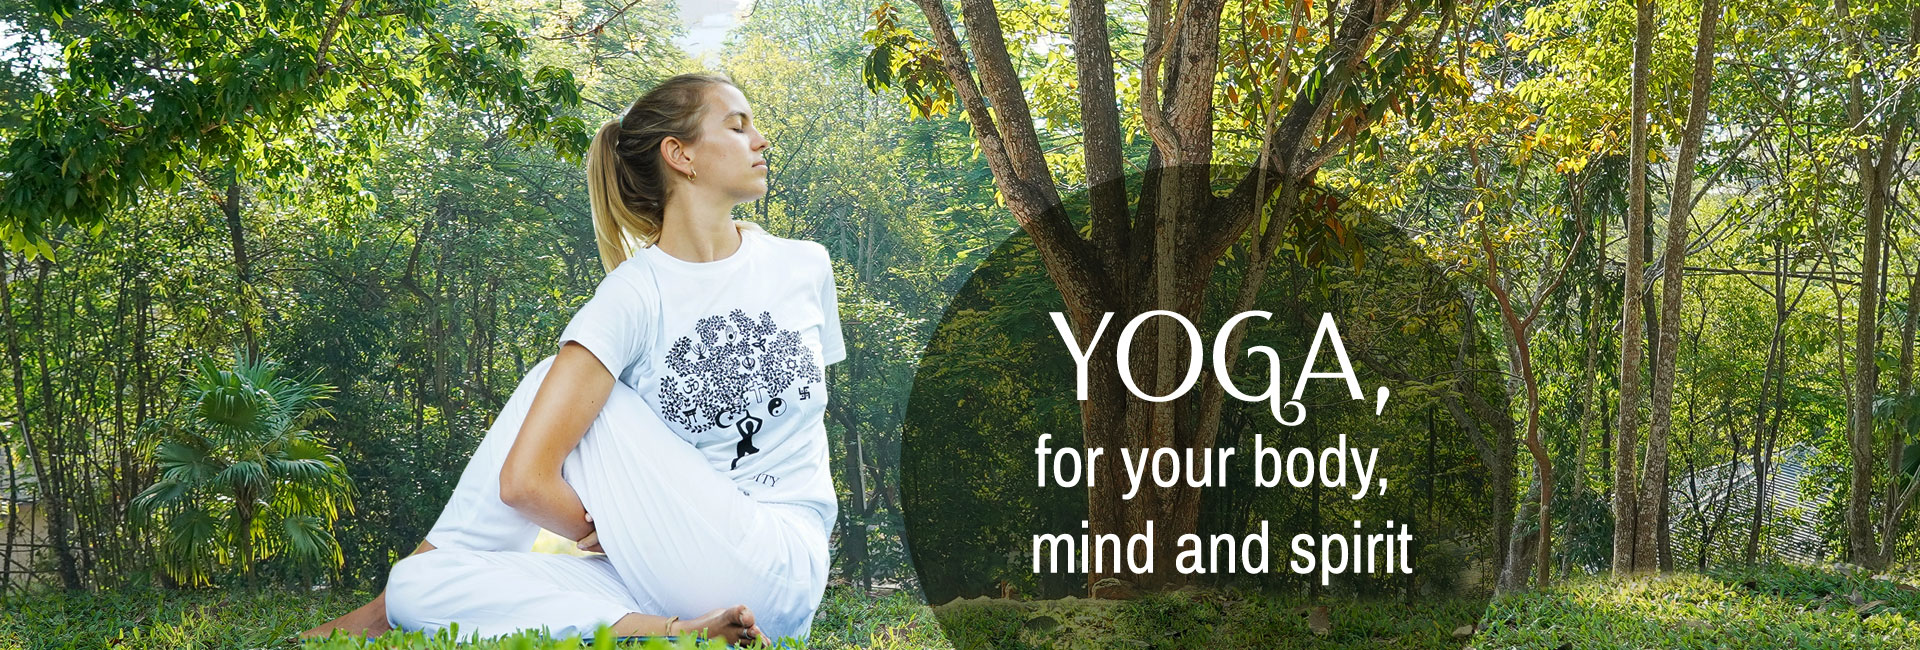 Yoga, for your body, mind and spirit